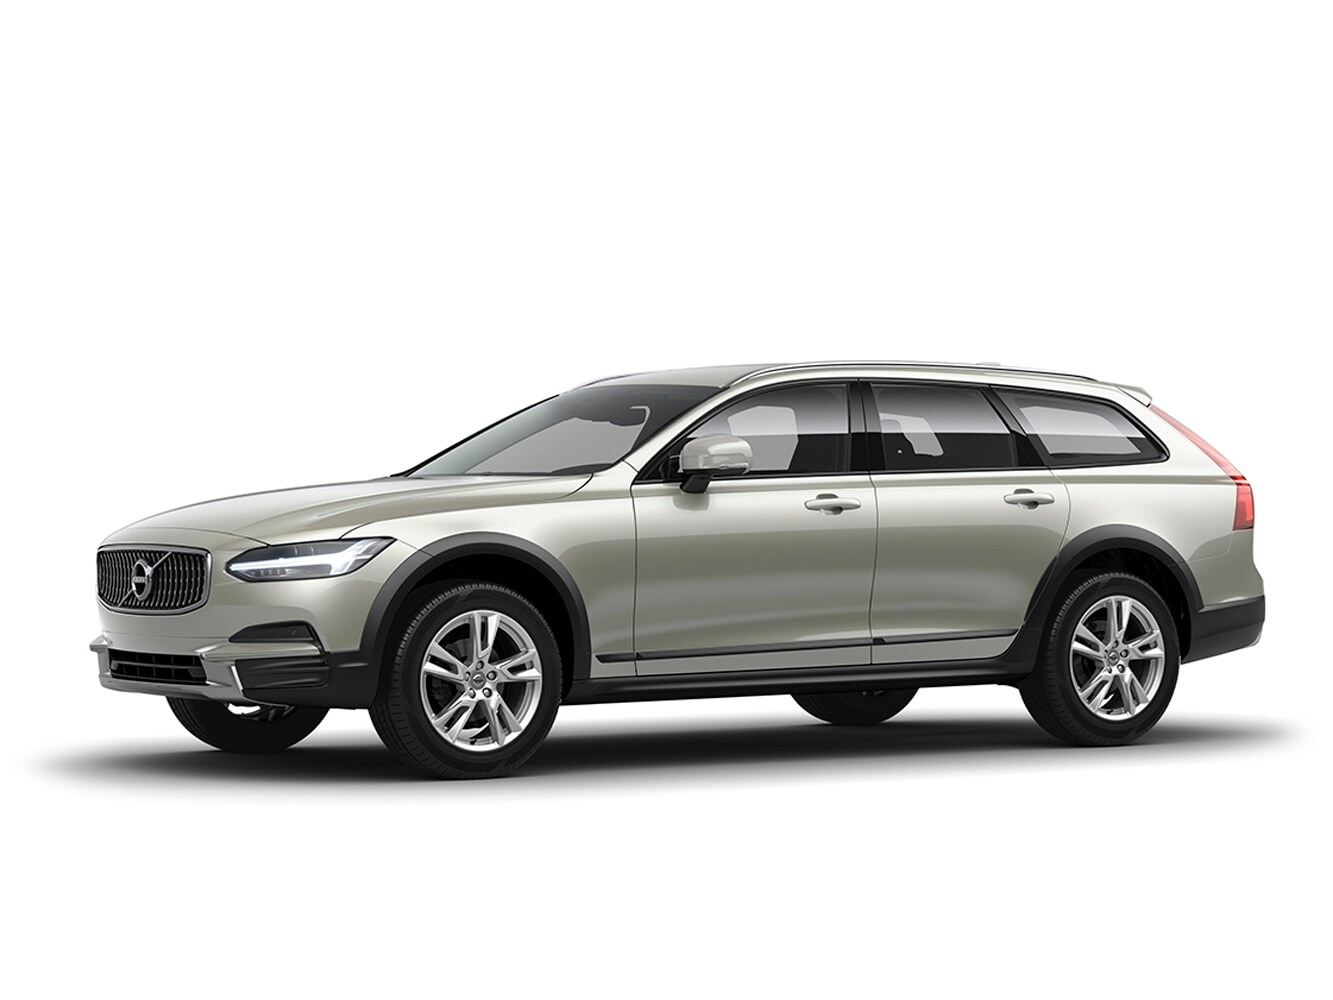 The Volvo V90 Cross Country trim